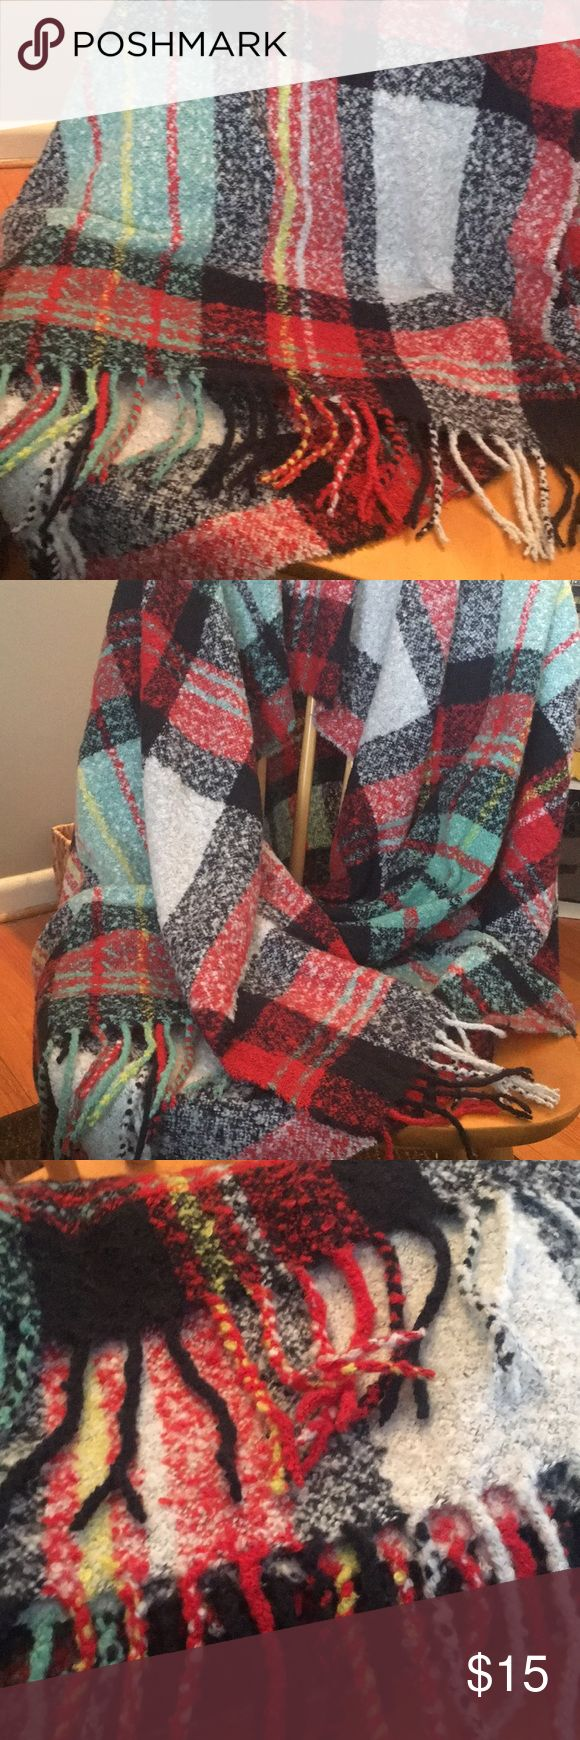 Plaid chenille wrap Super soft multicolored plaid wrap. Fringe edge. Black, red, yellow, turquoise and white plaid. American Eagle Outfitters Accessories Scarves & Wraps